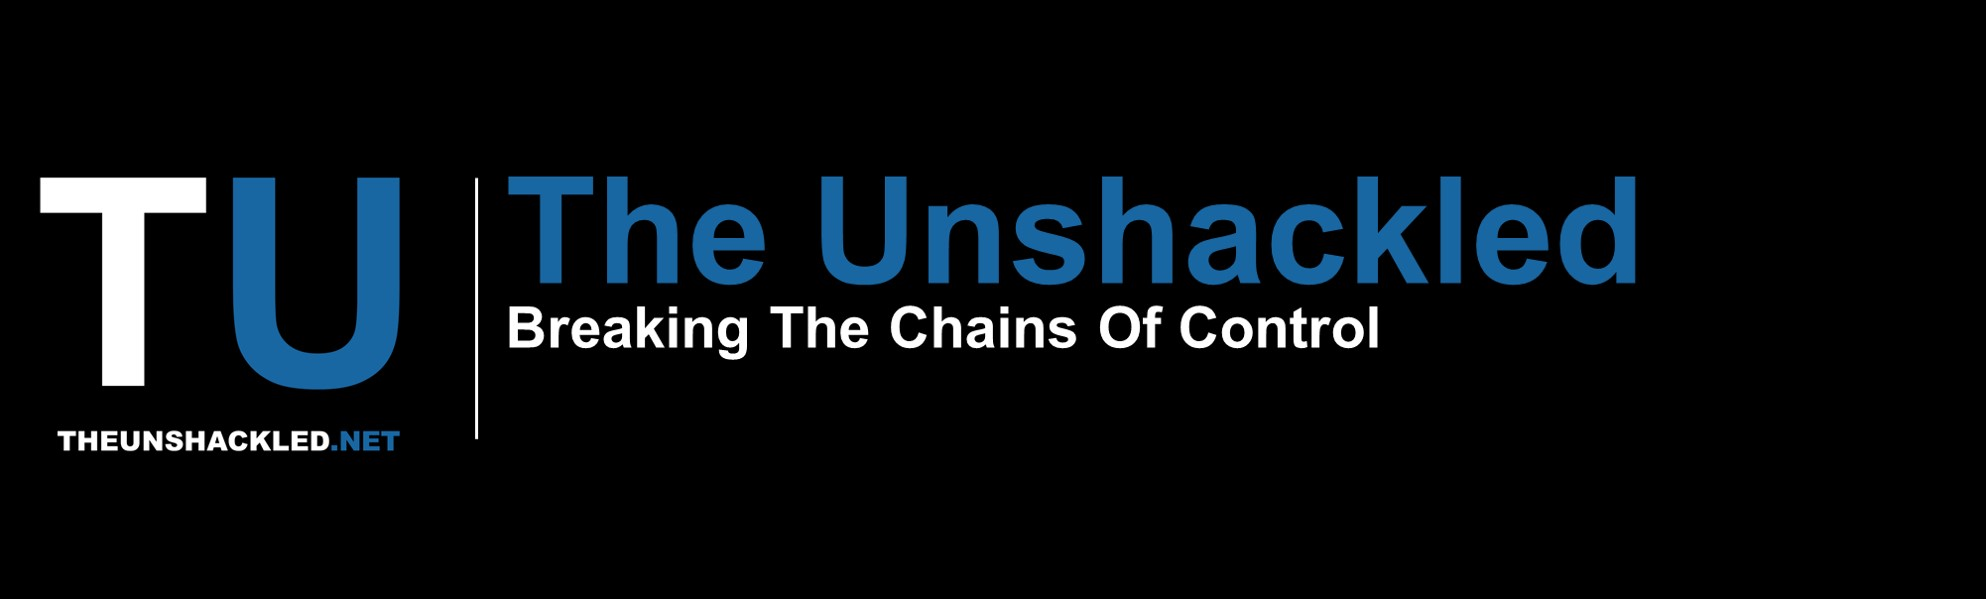 The Unshackled